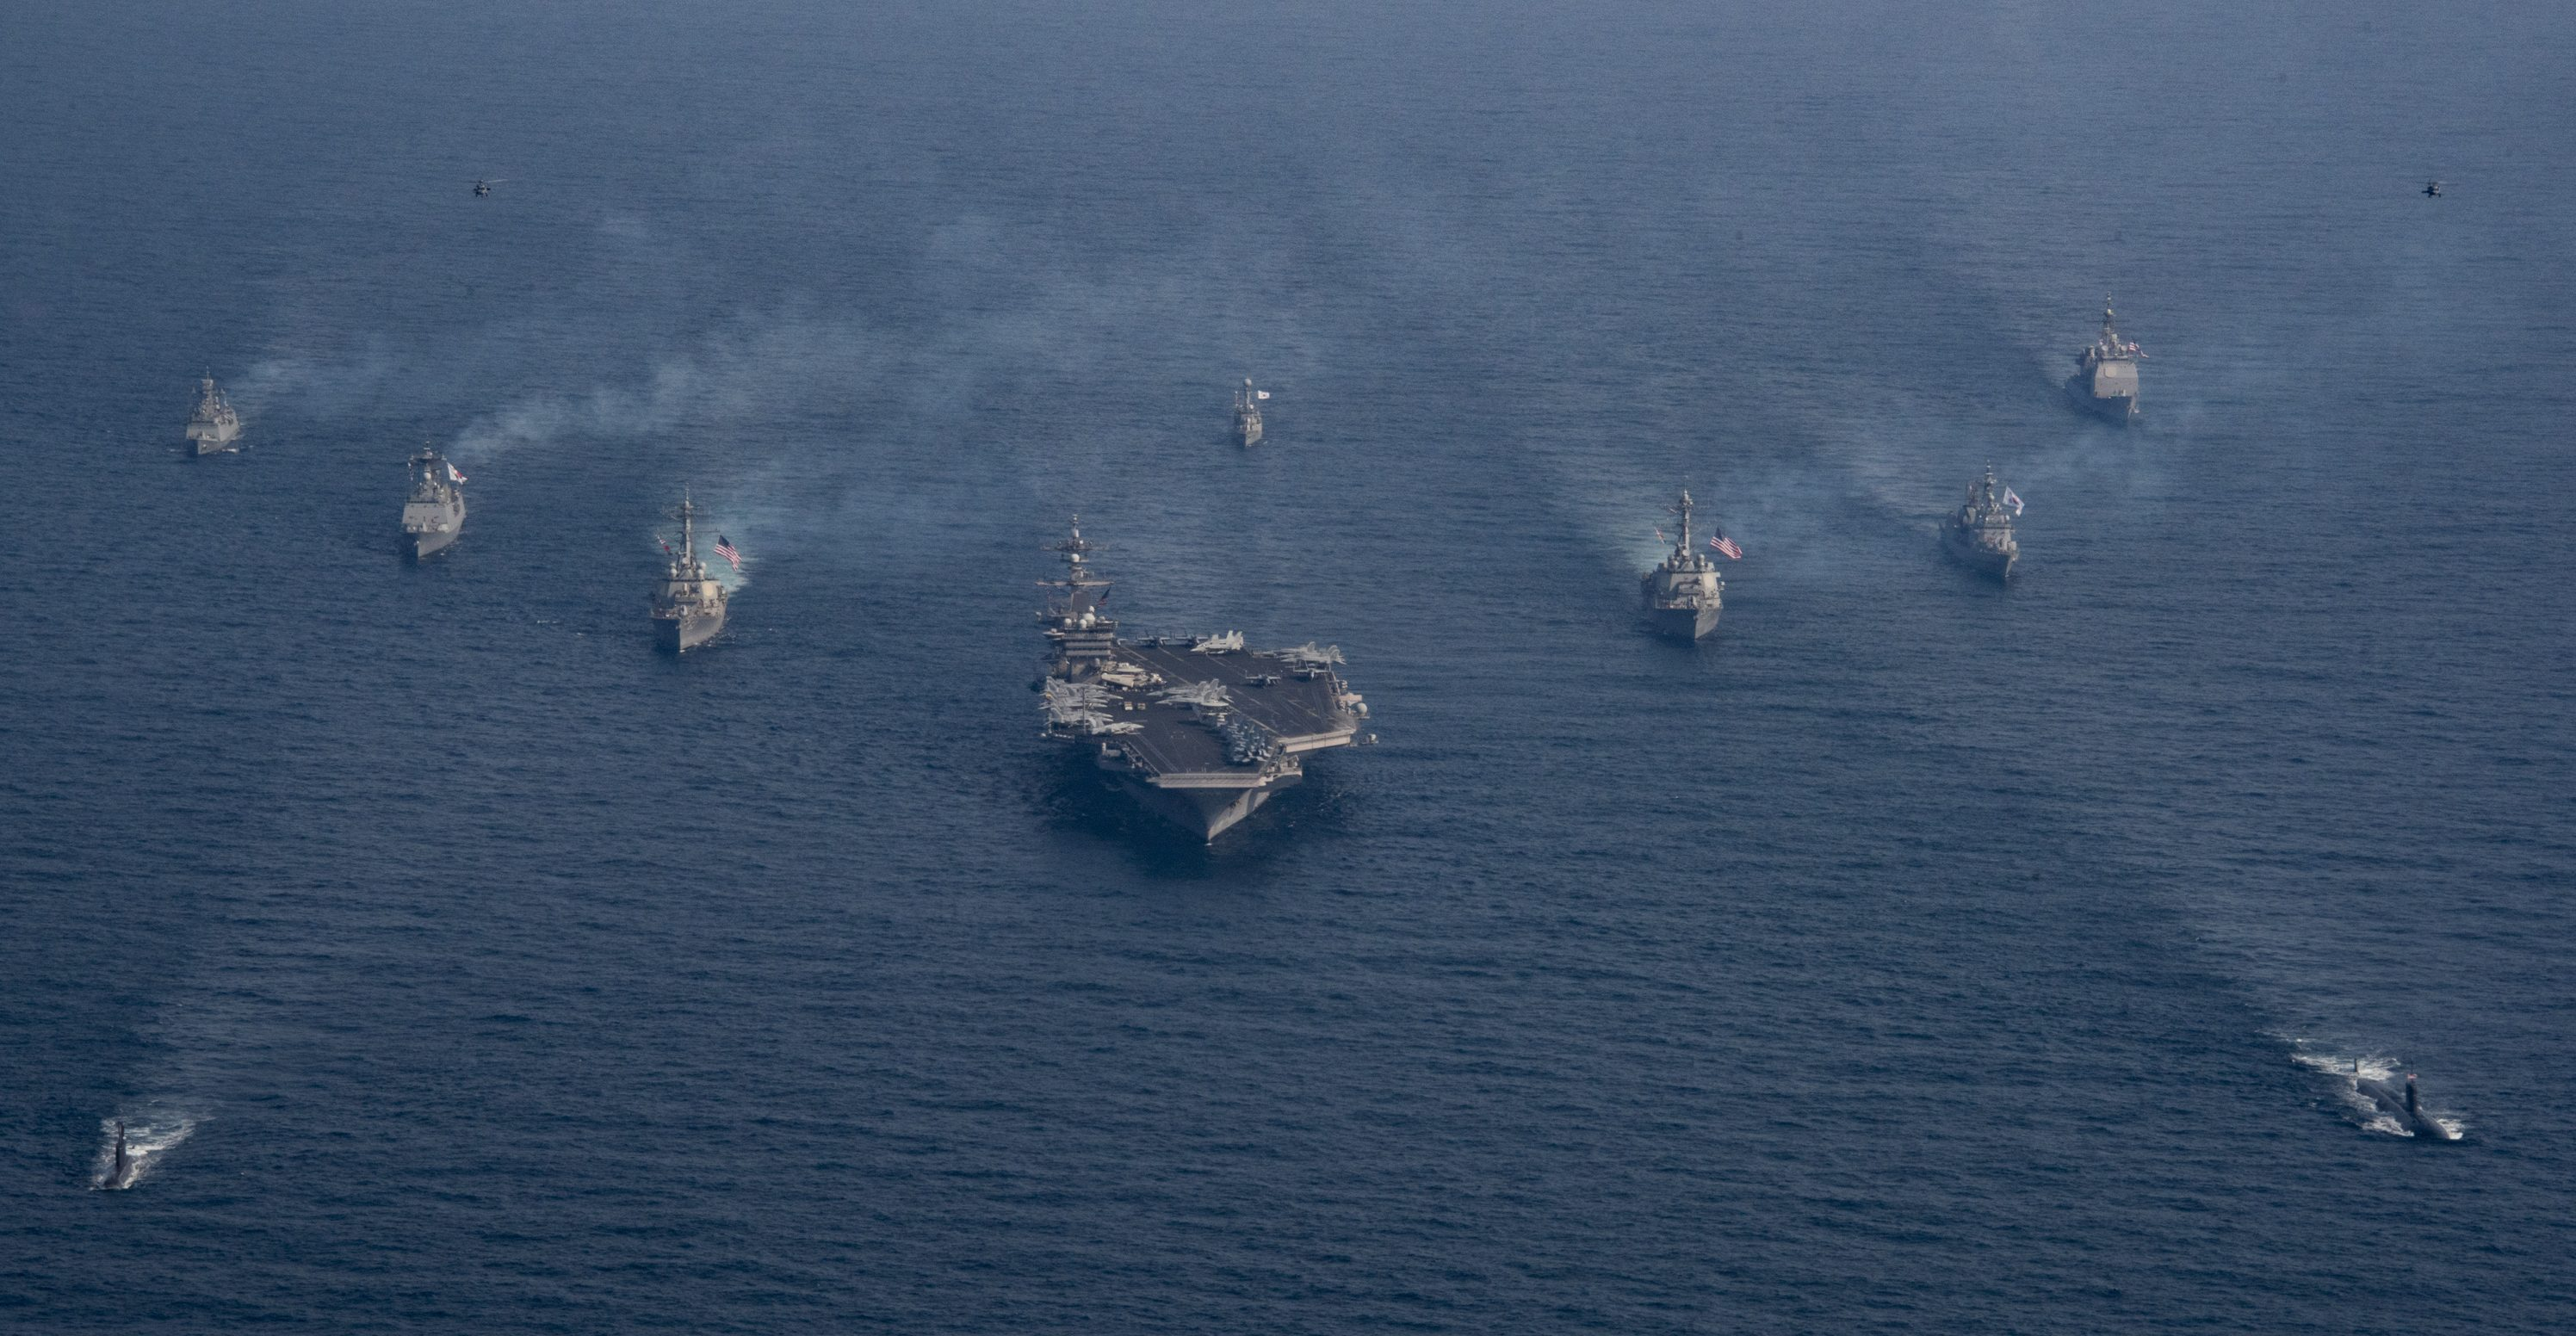 170322-N-BS159-135 U.S. 7TH FLEET AREA OF OPERATIONS (March 22, 2017) United States and the Republic of Korea Navy vessels participate in a photo exercise during Operation Foal Eagle. (U.S. Navy photo by Mass Communication Specialist 3rd Class Devin M. Monroe/Released)